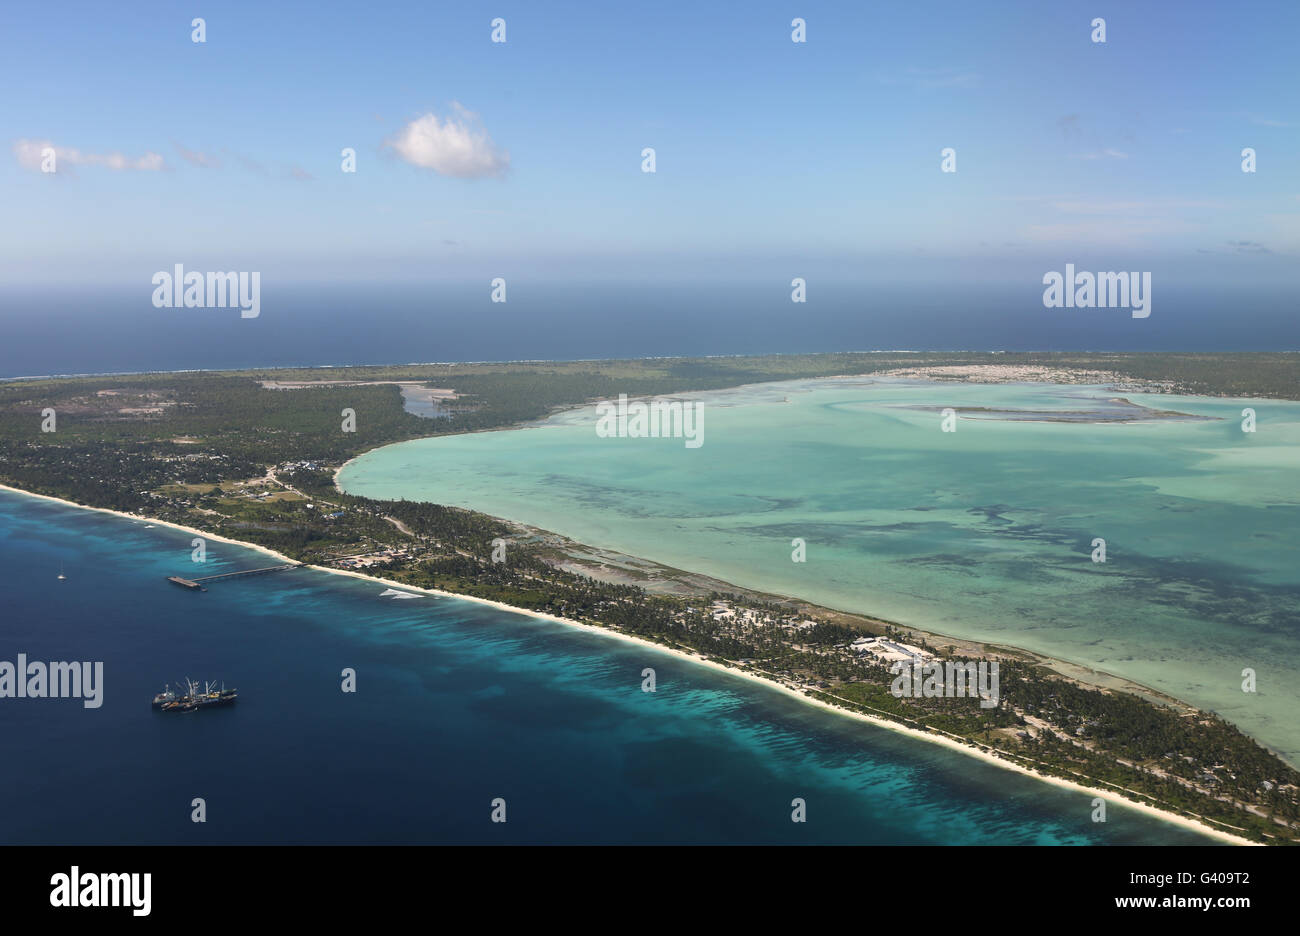 Aerial view of Christmas Island, Kiribati Stock Photo